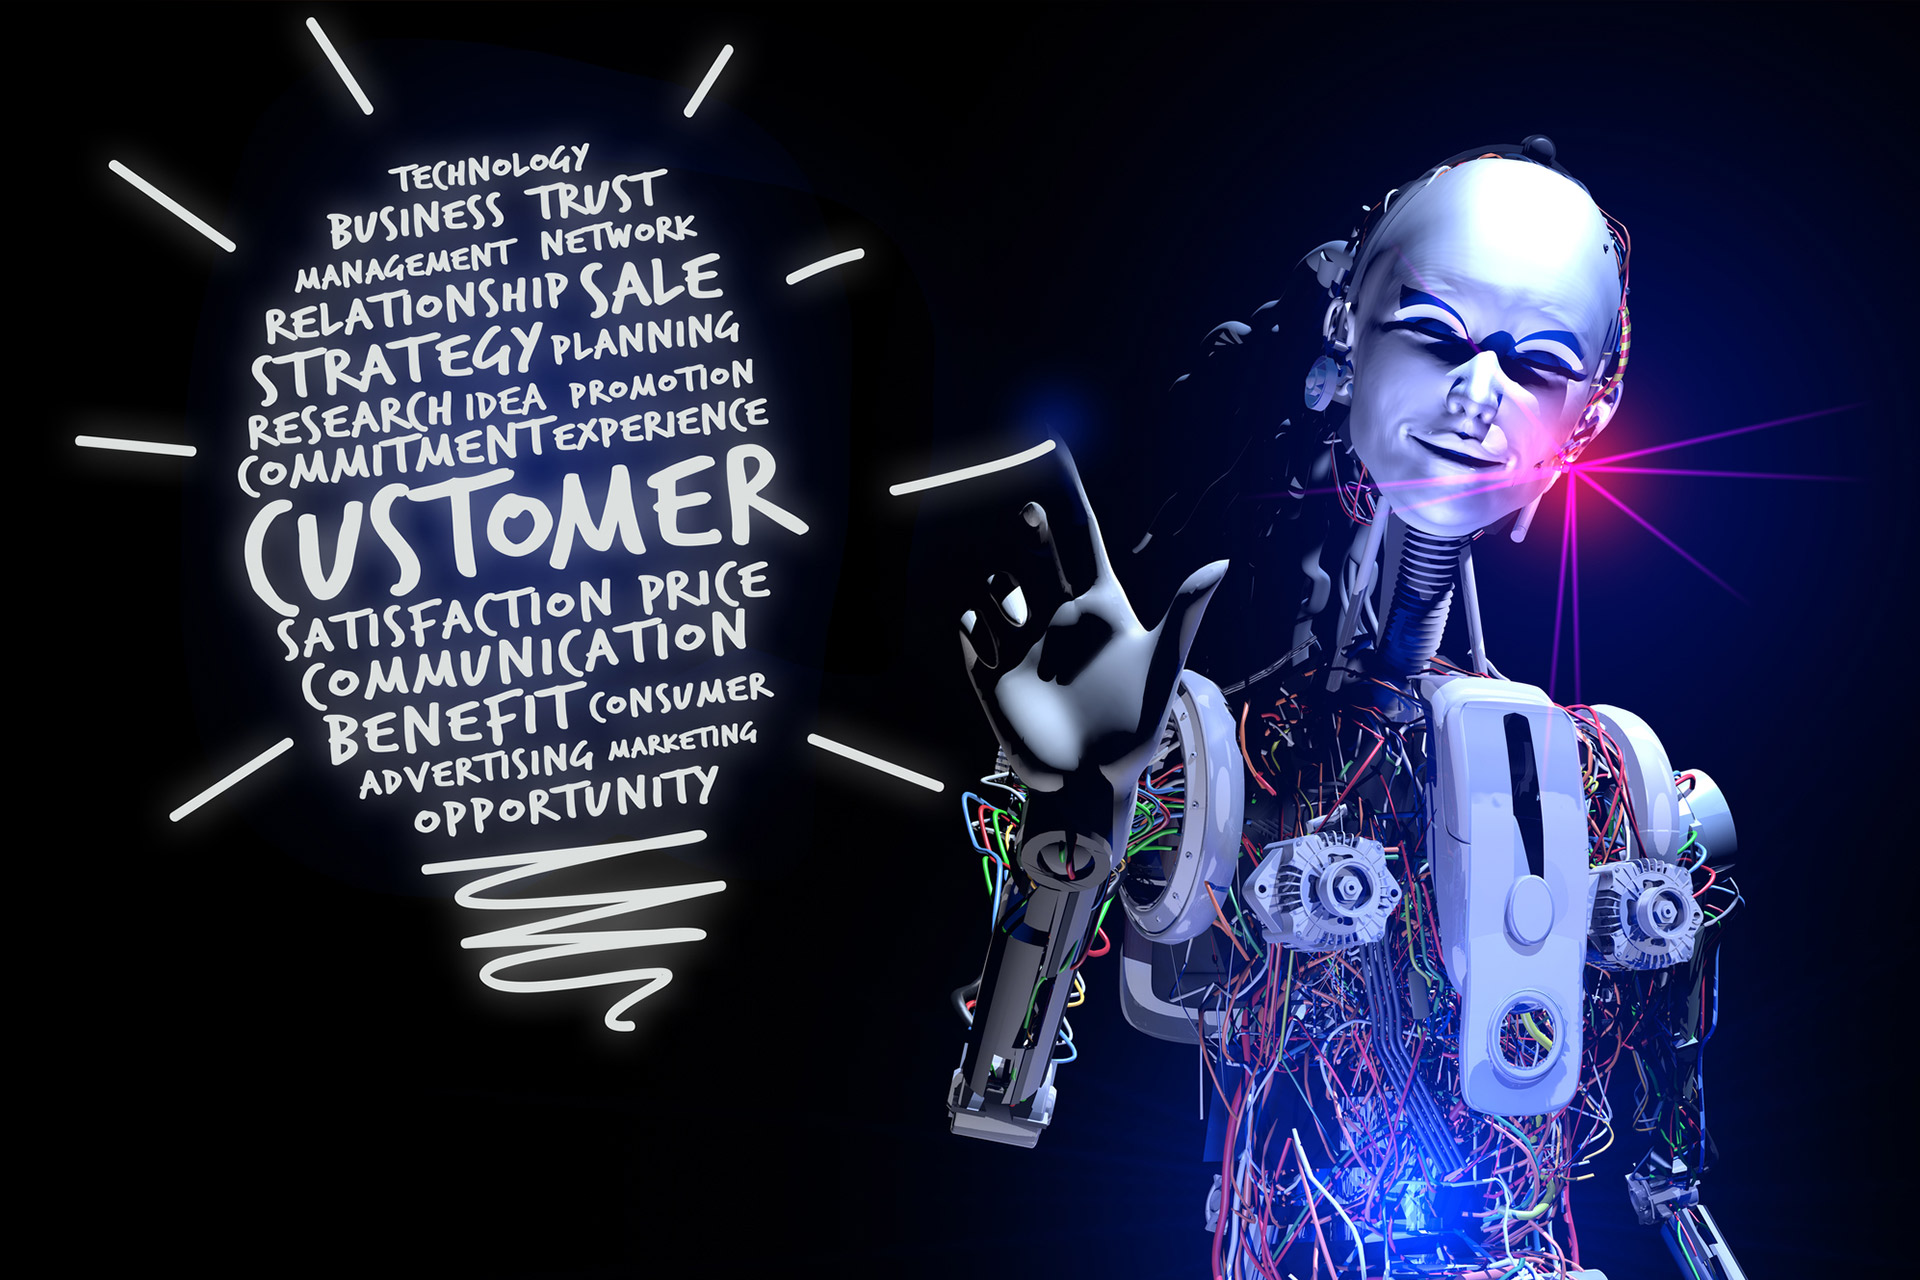 Crazy Cool AI-Based Features of Sitecore that Help Deliver A Buttery-Smooth Customer Experience